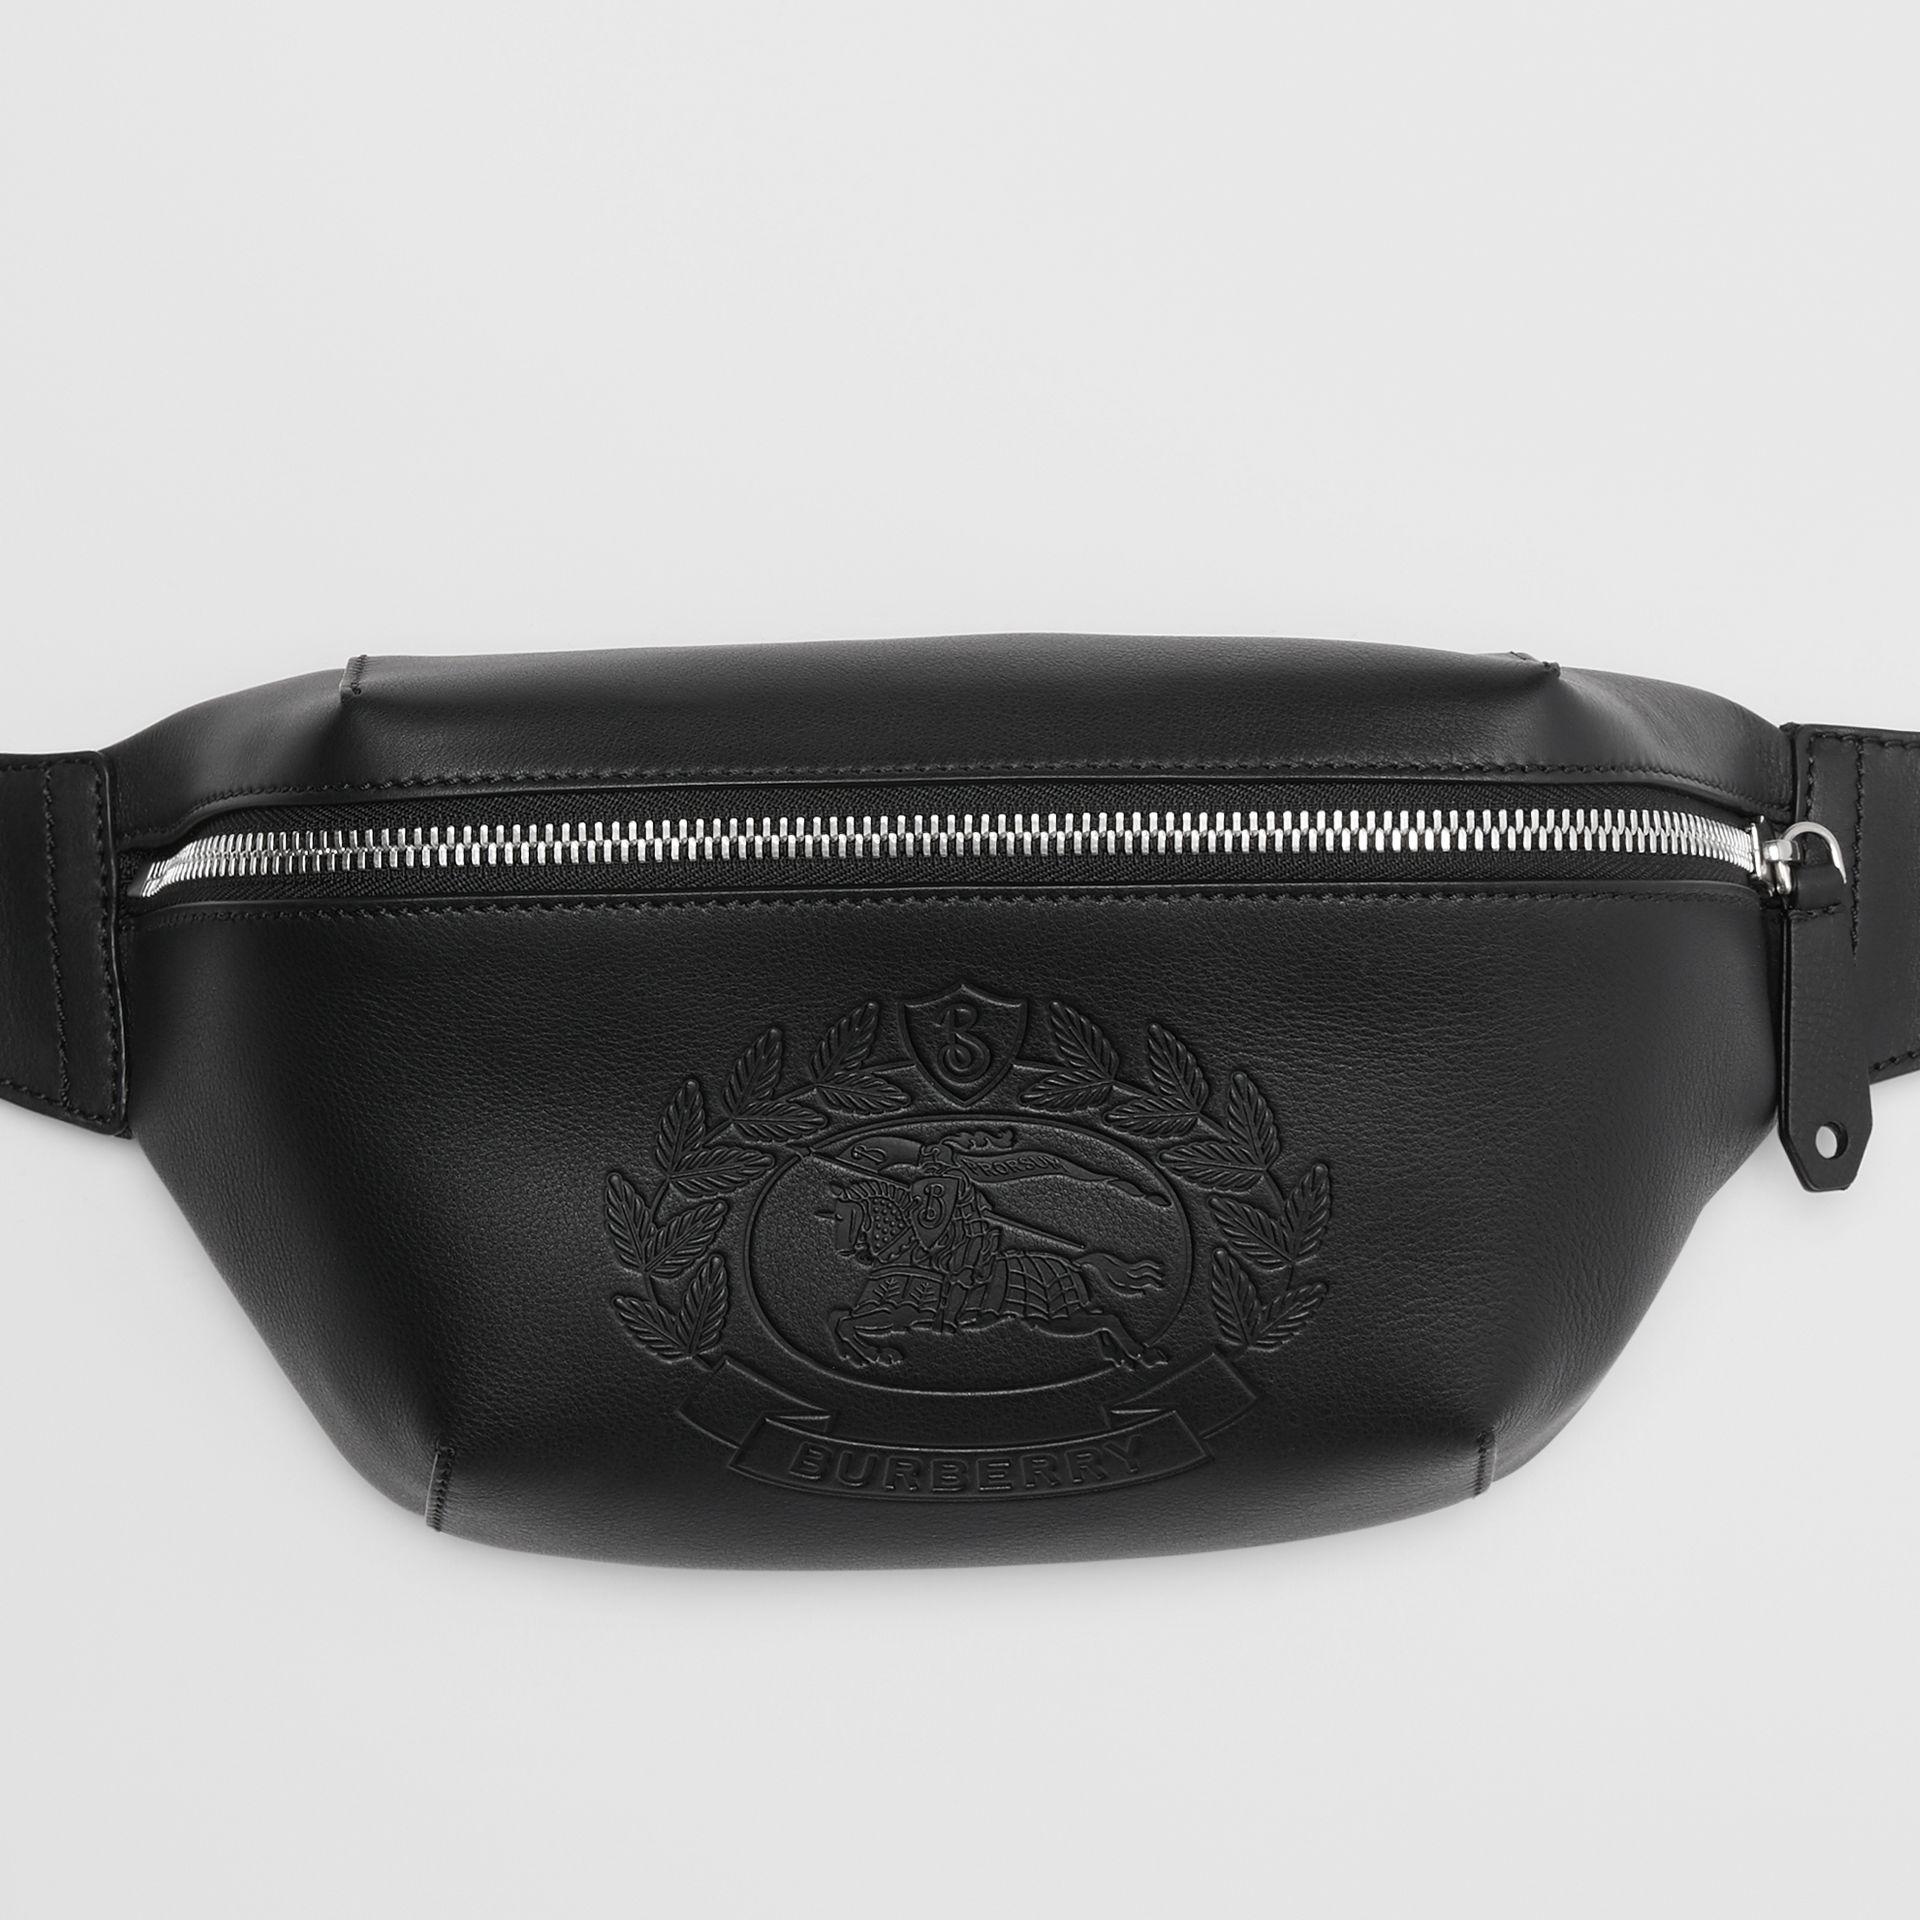 Medium Embossed Crest Leather Bum Bag in Black | Burberry United Kingdom - gallery image 1